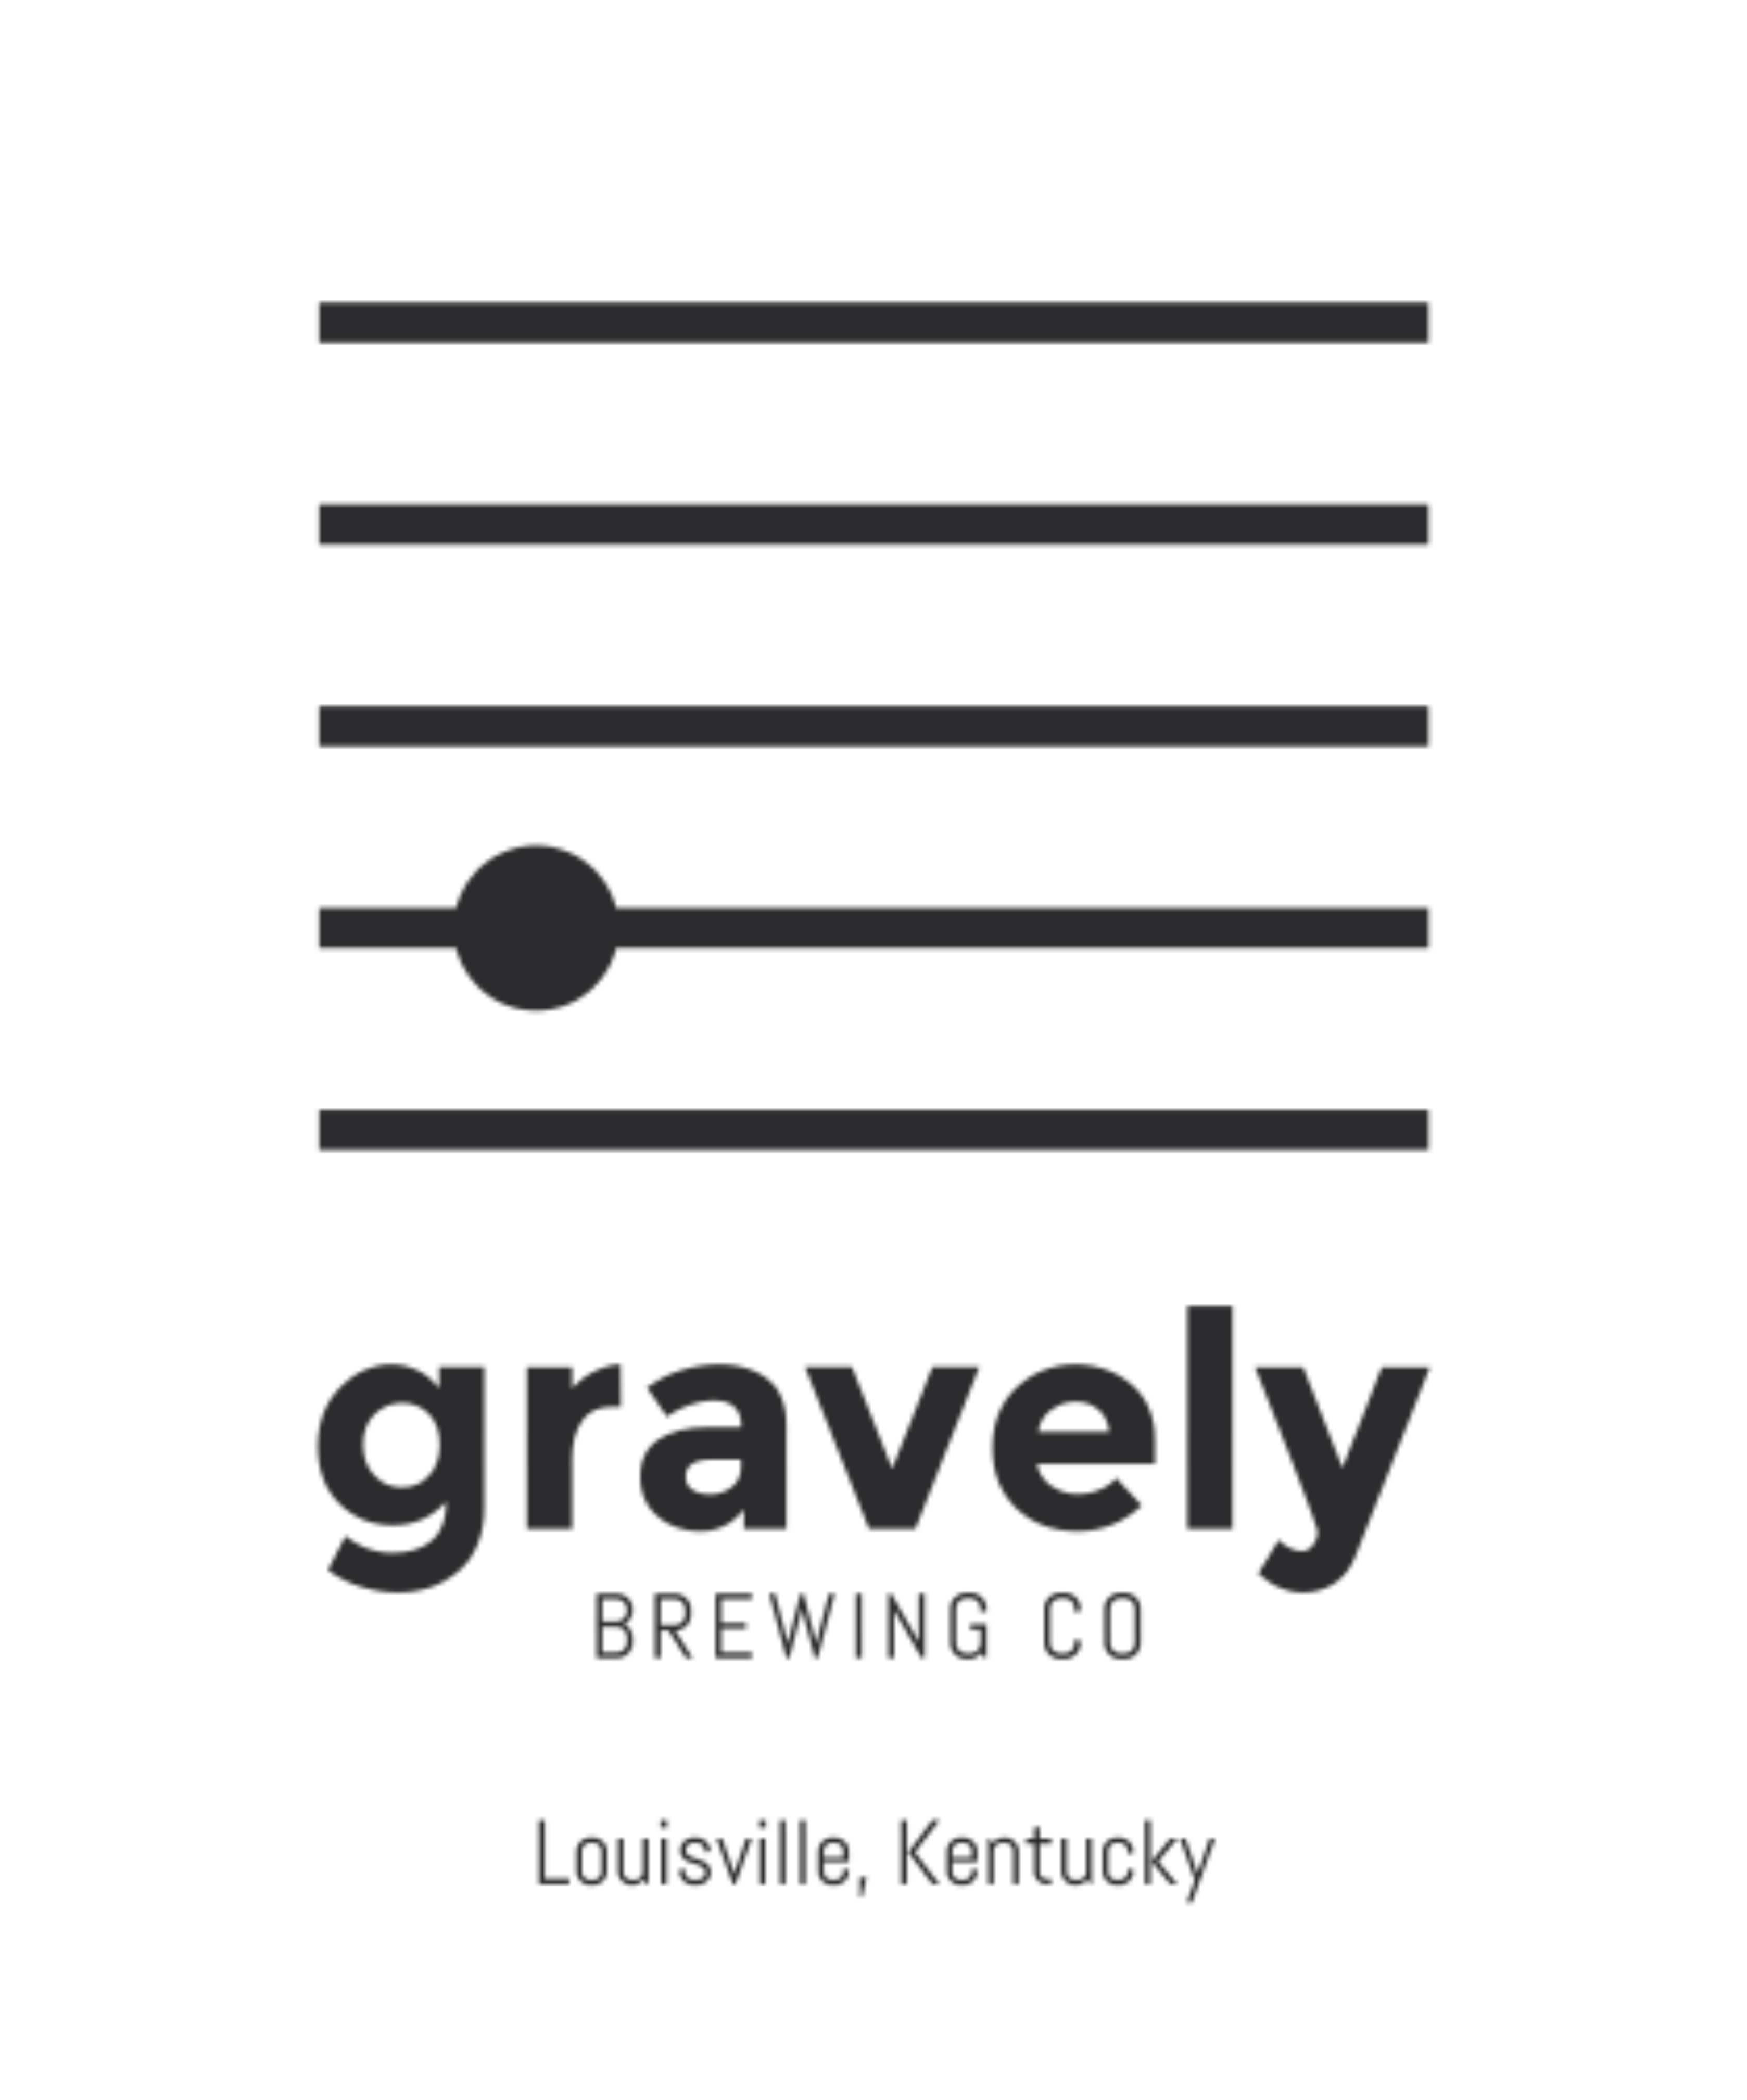 Gravely Brewing